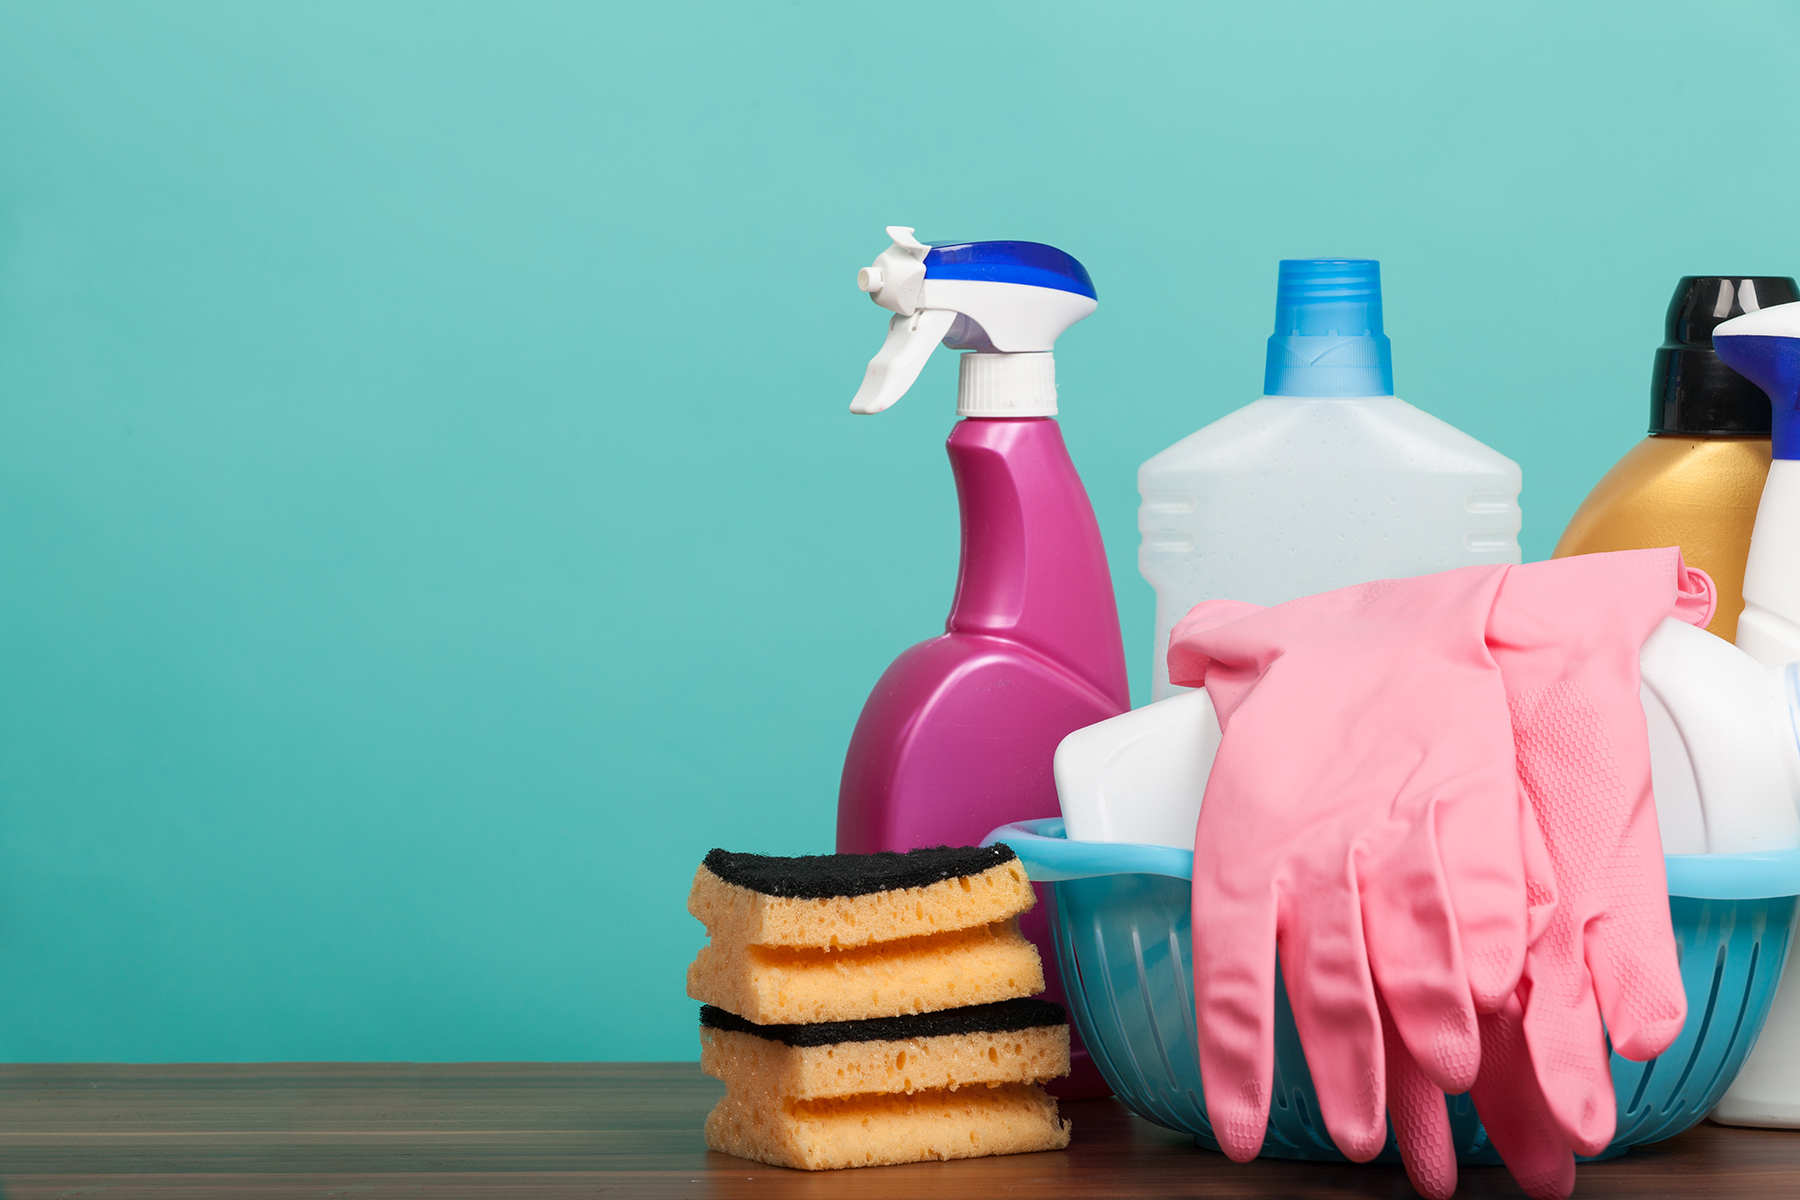 Cleaning supplies on table